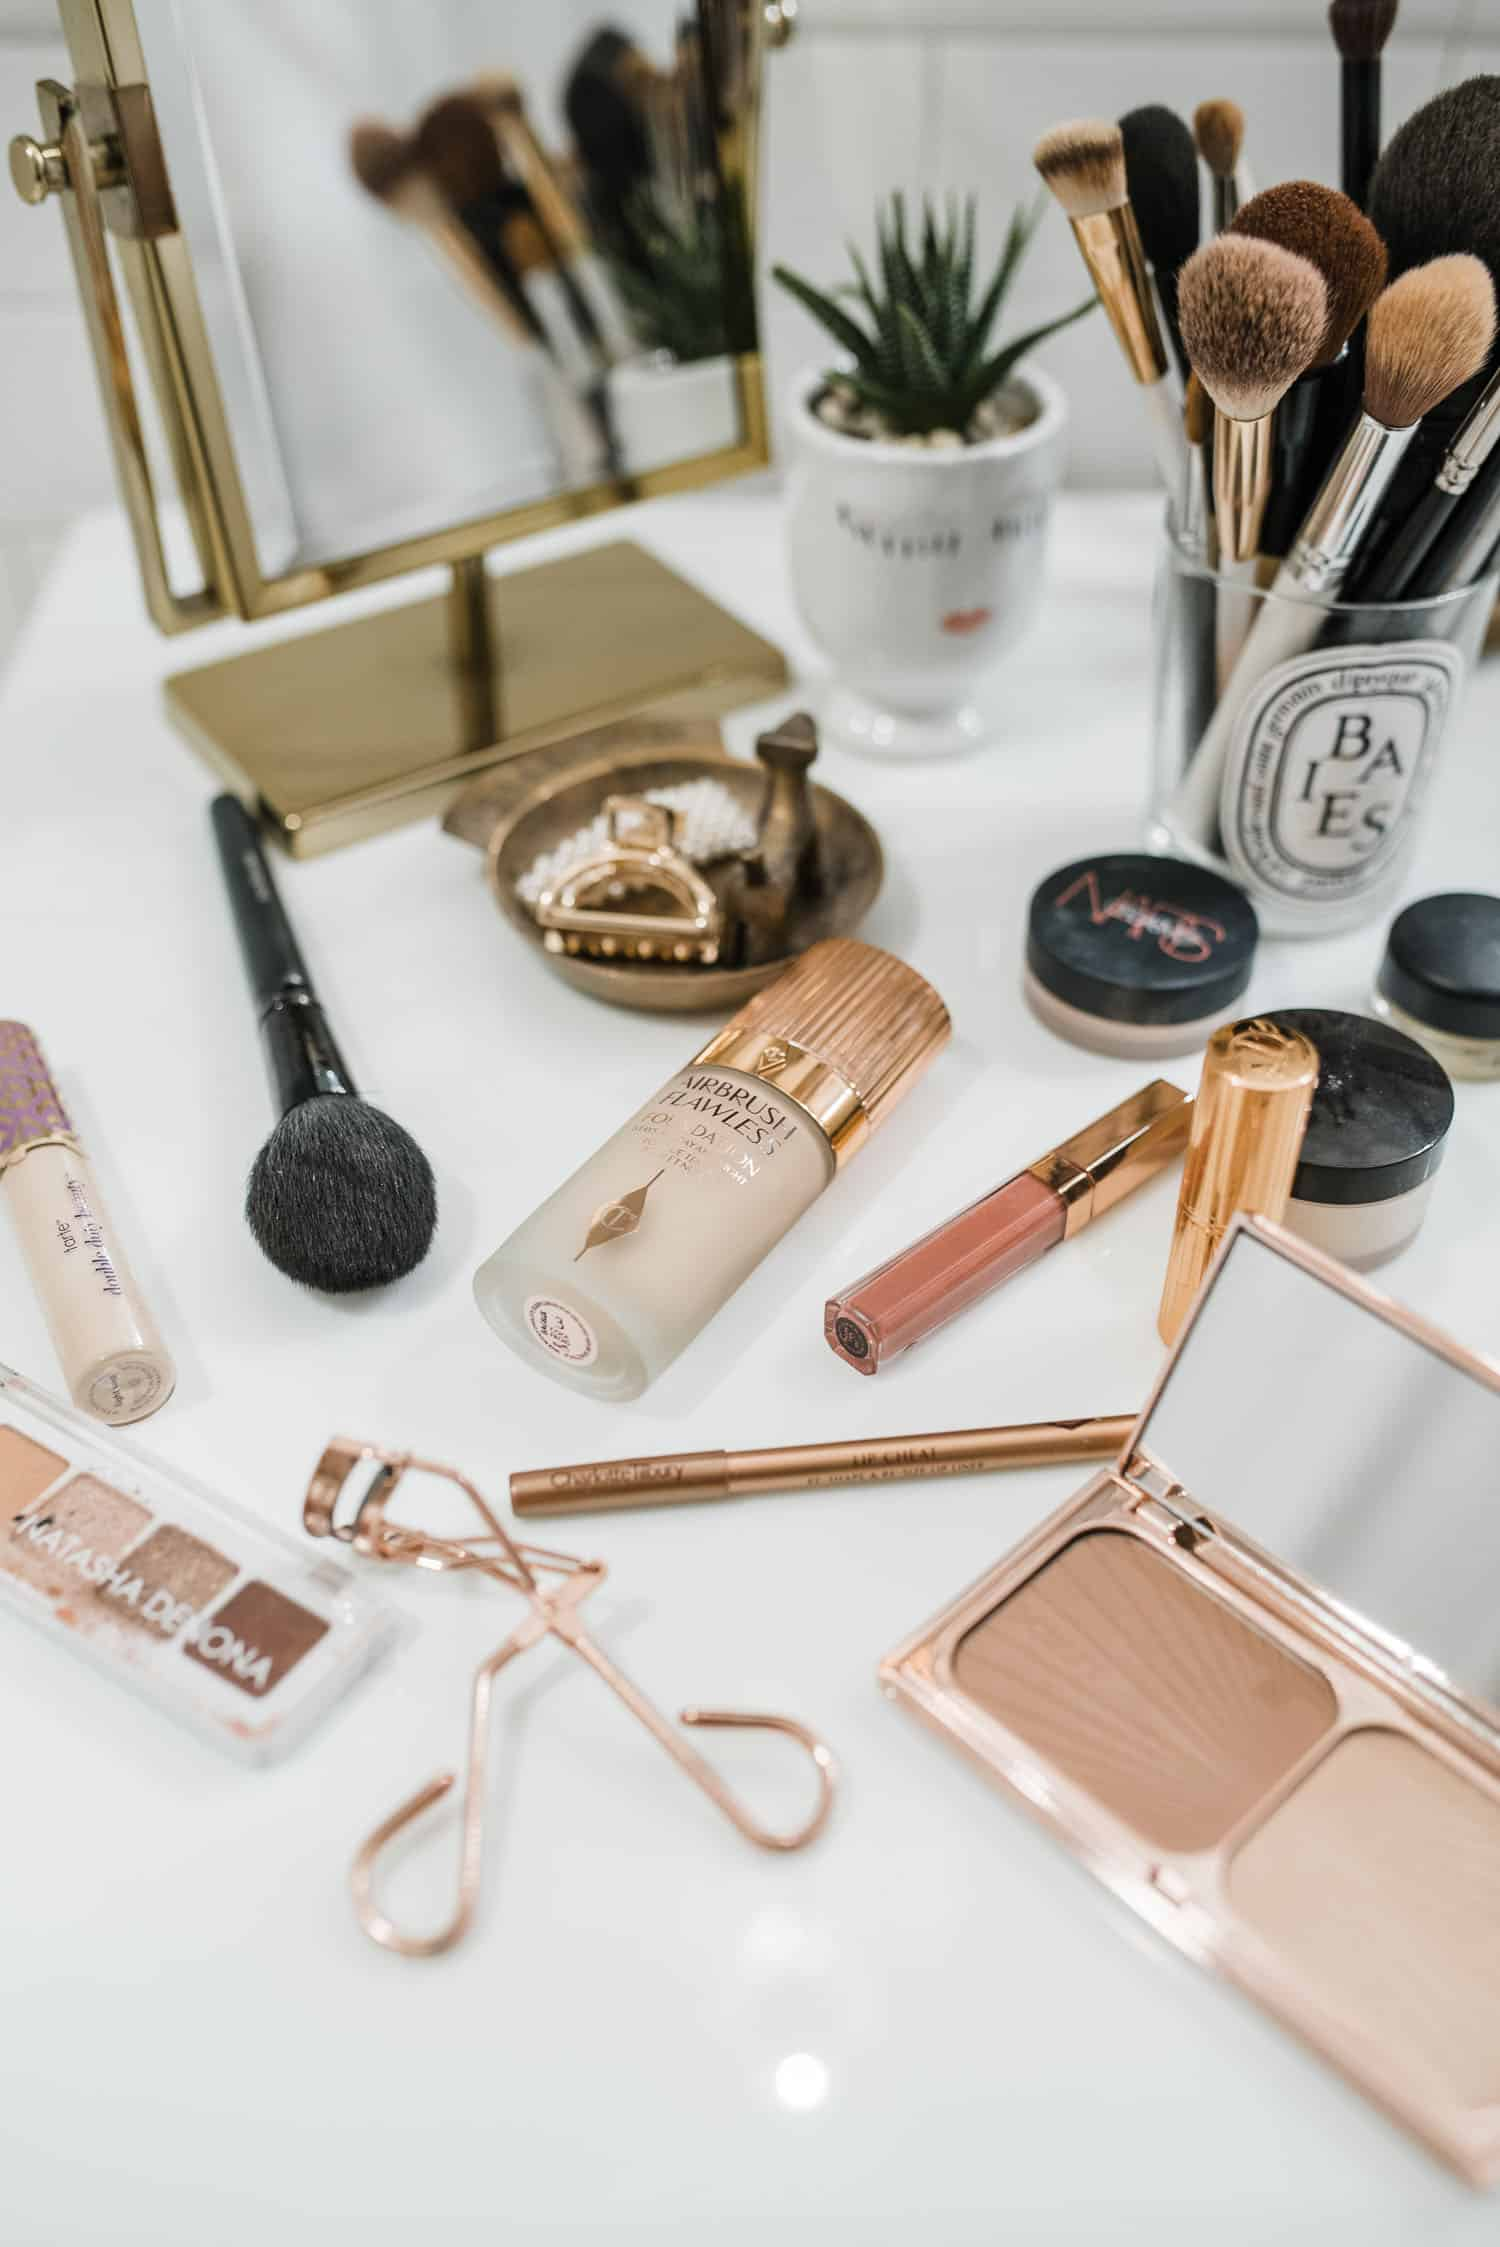 Sephora Beauty Insider Sale Event Tips + Deals